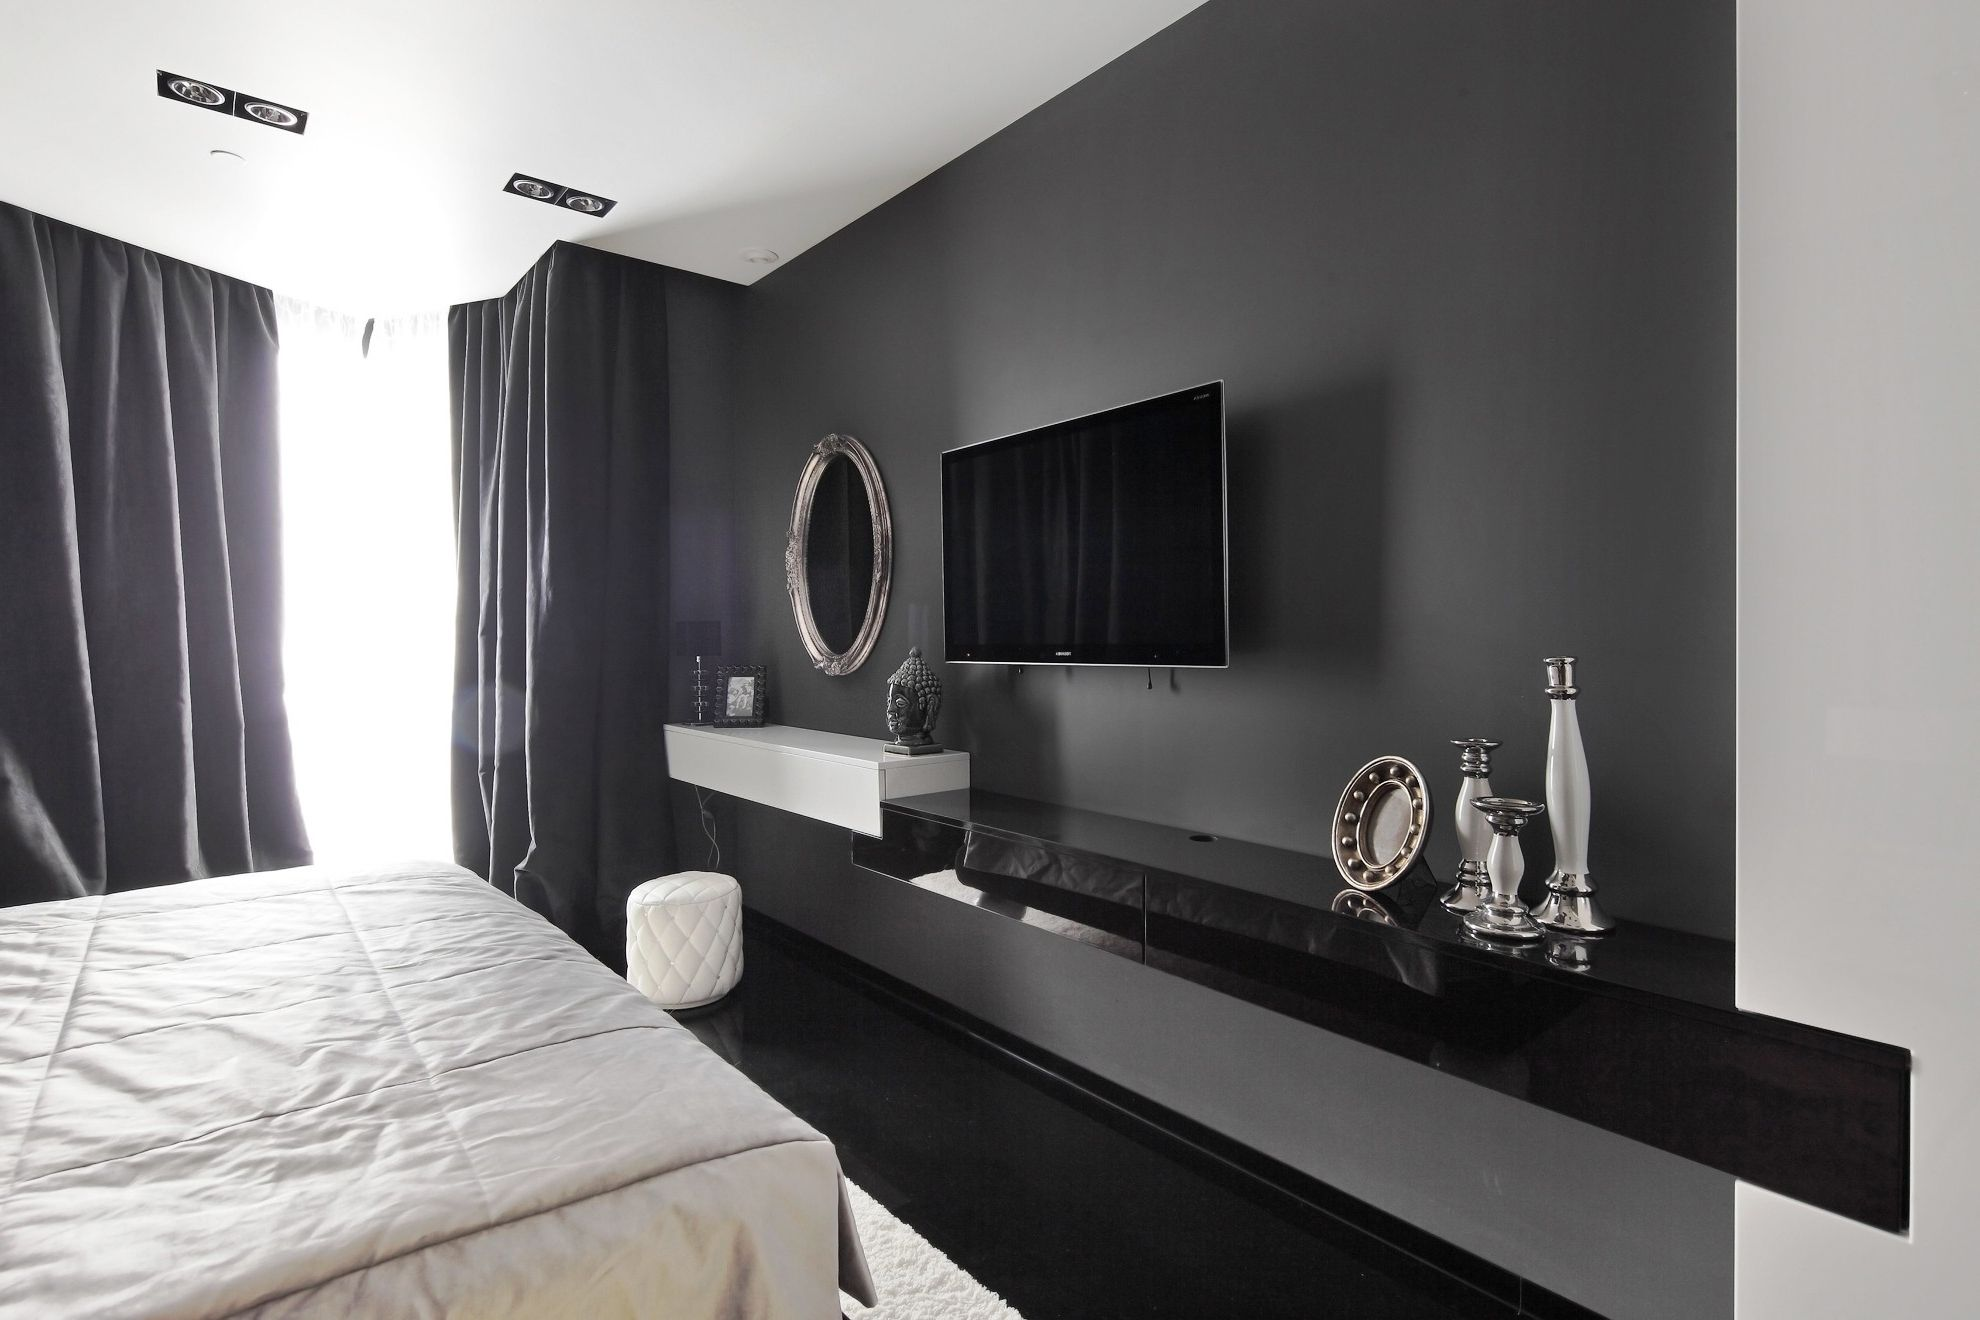 Creative And Modern Tv Wall Mount Ideas For Your Room Mounted Tv Ideas Bedroom Tv In Bedroom White Bedroom Decor